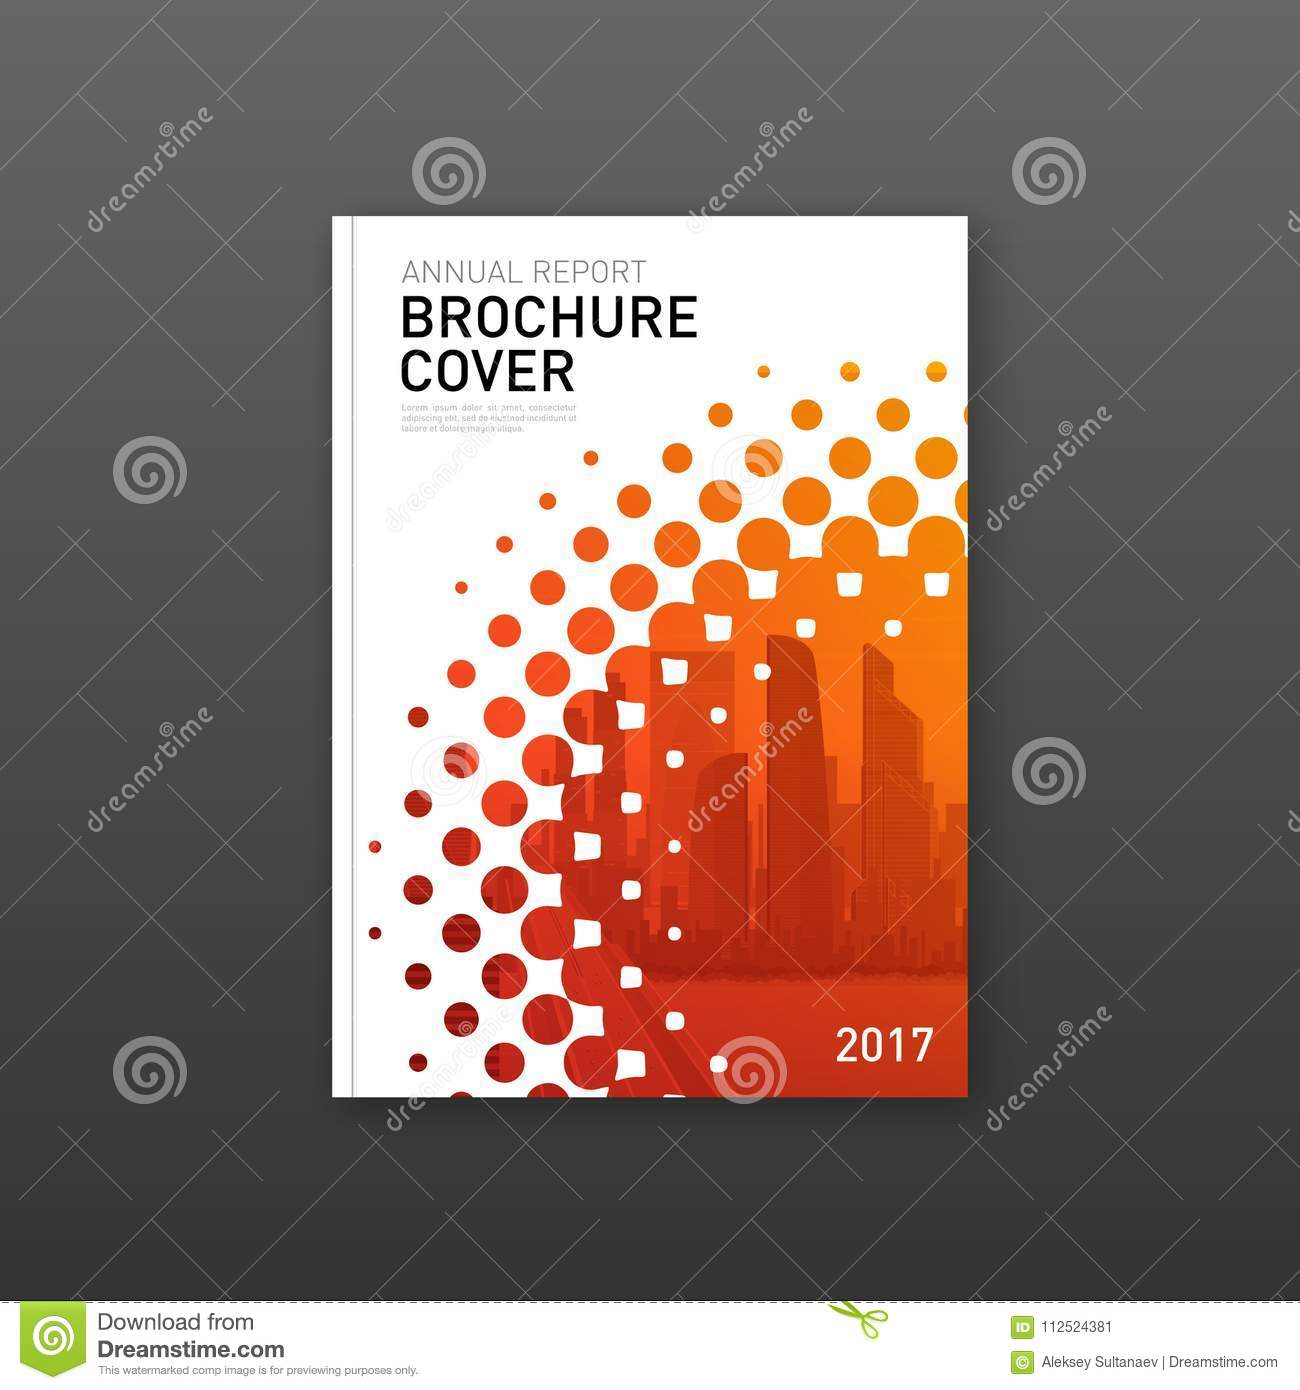 brochure cover design template for construction or technology